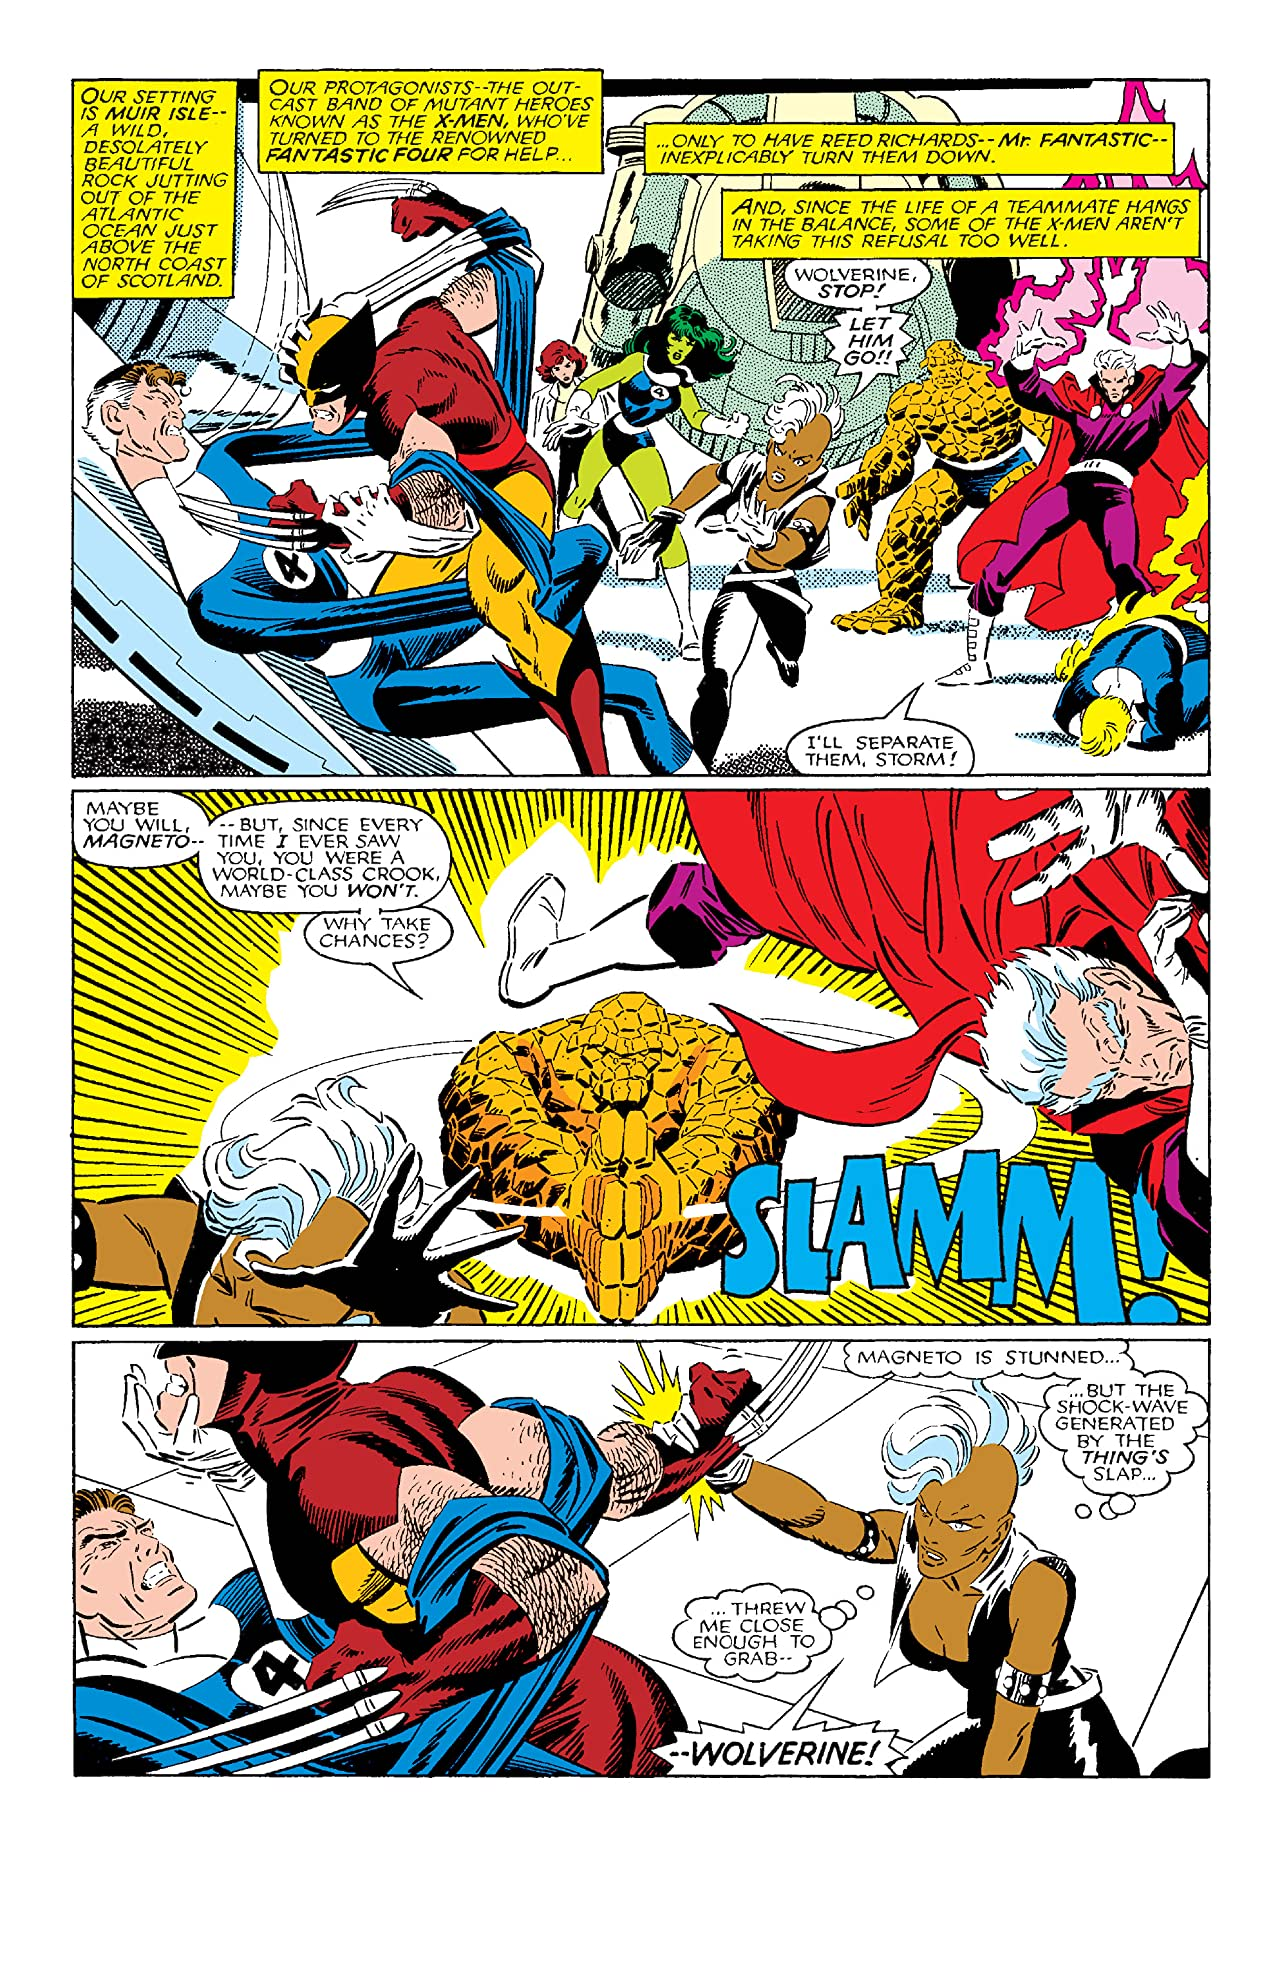 Fantastic Four vs. X-Men (1987) #2 (of 4)